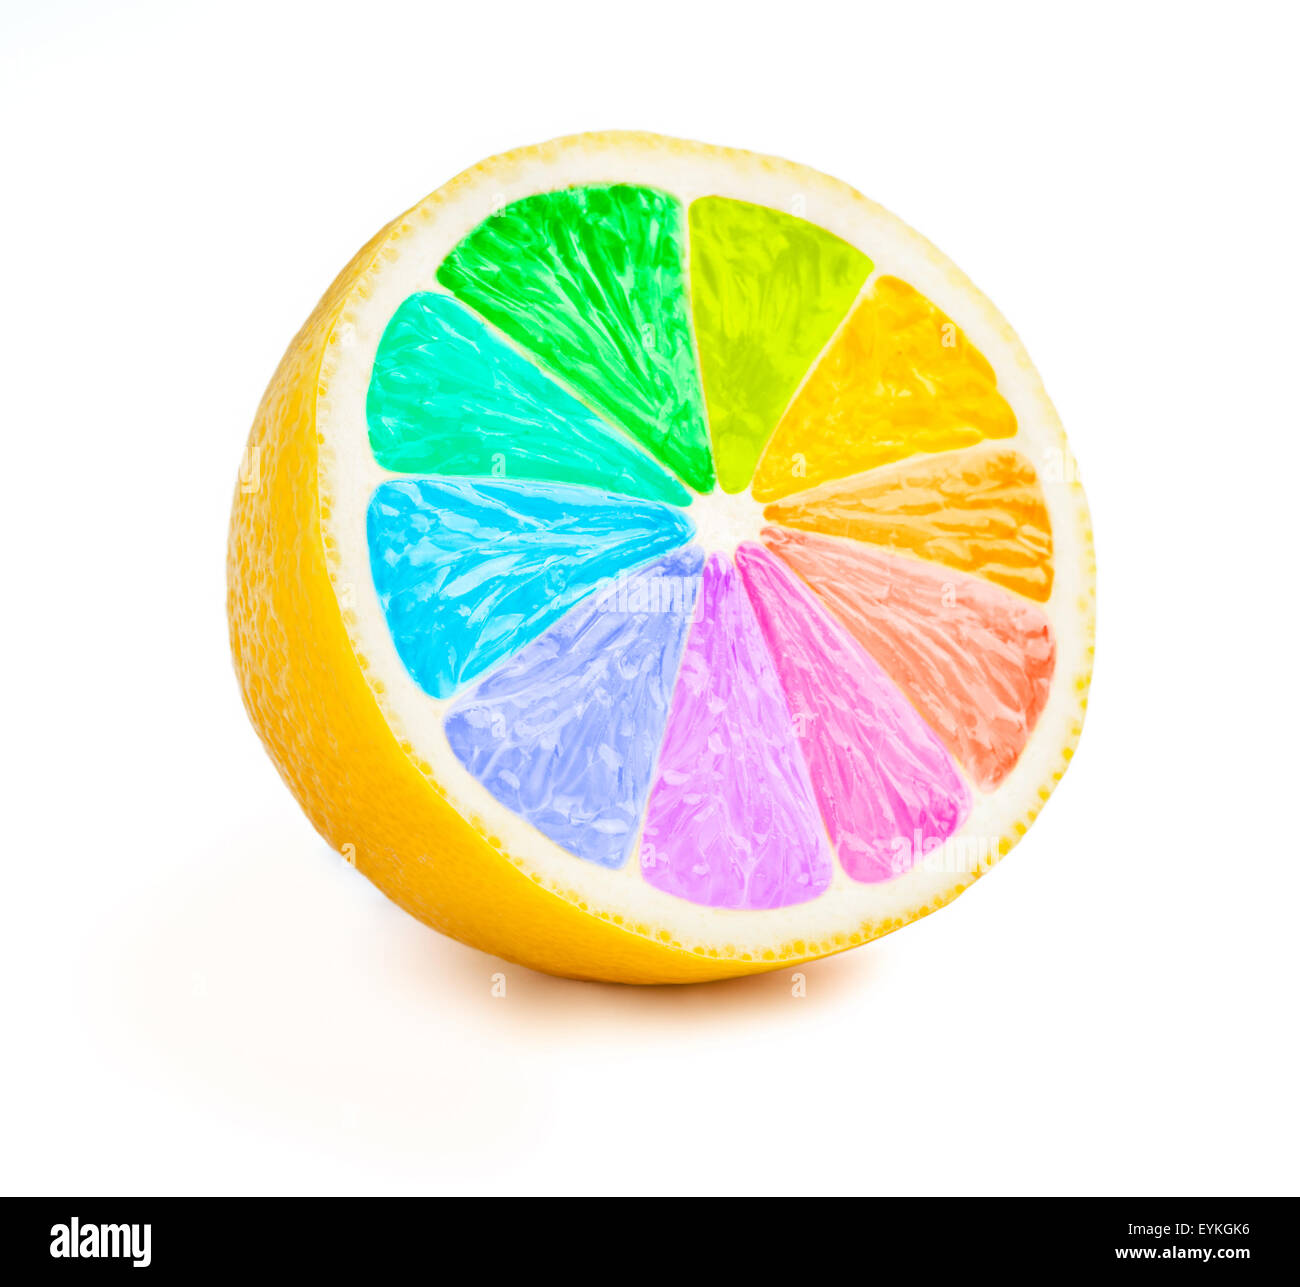 Lemon cut half slice with color wheel rainbow colors isolated on white background Stock Photo